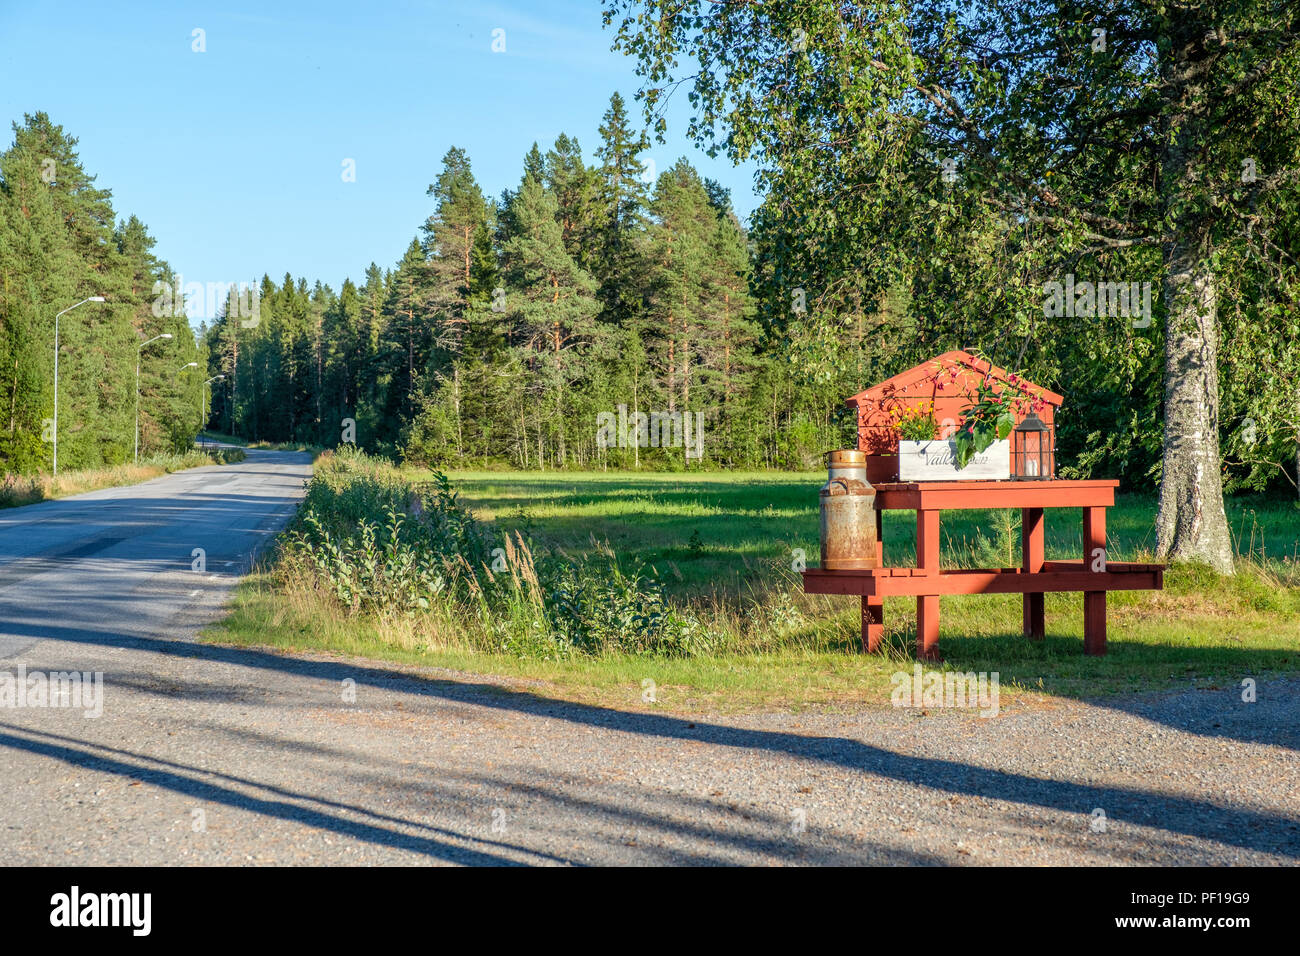 Traditional milk churn stand maintained for decorative purposes along a road in northern Sweden - Stock Image